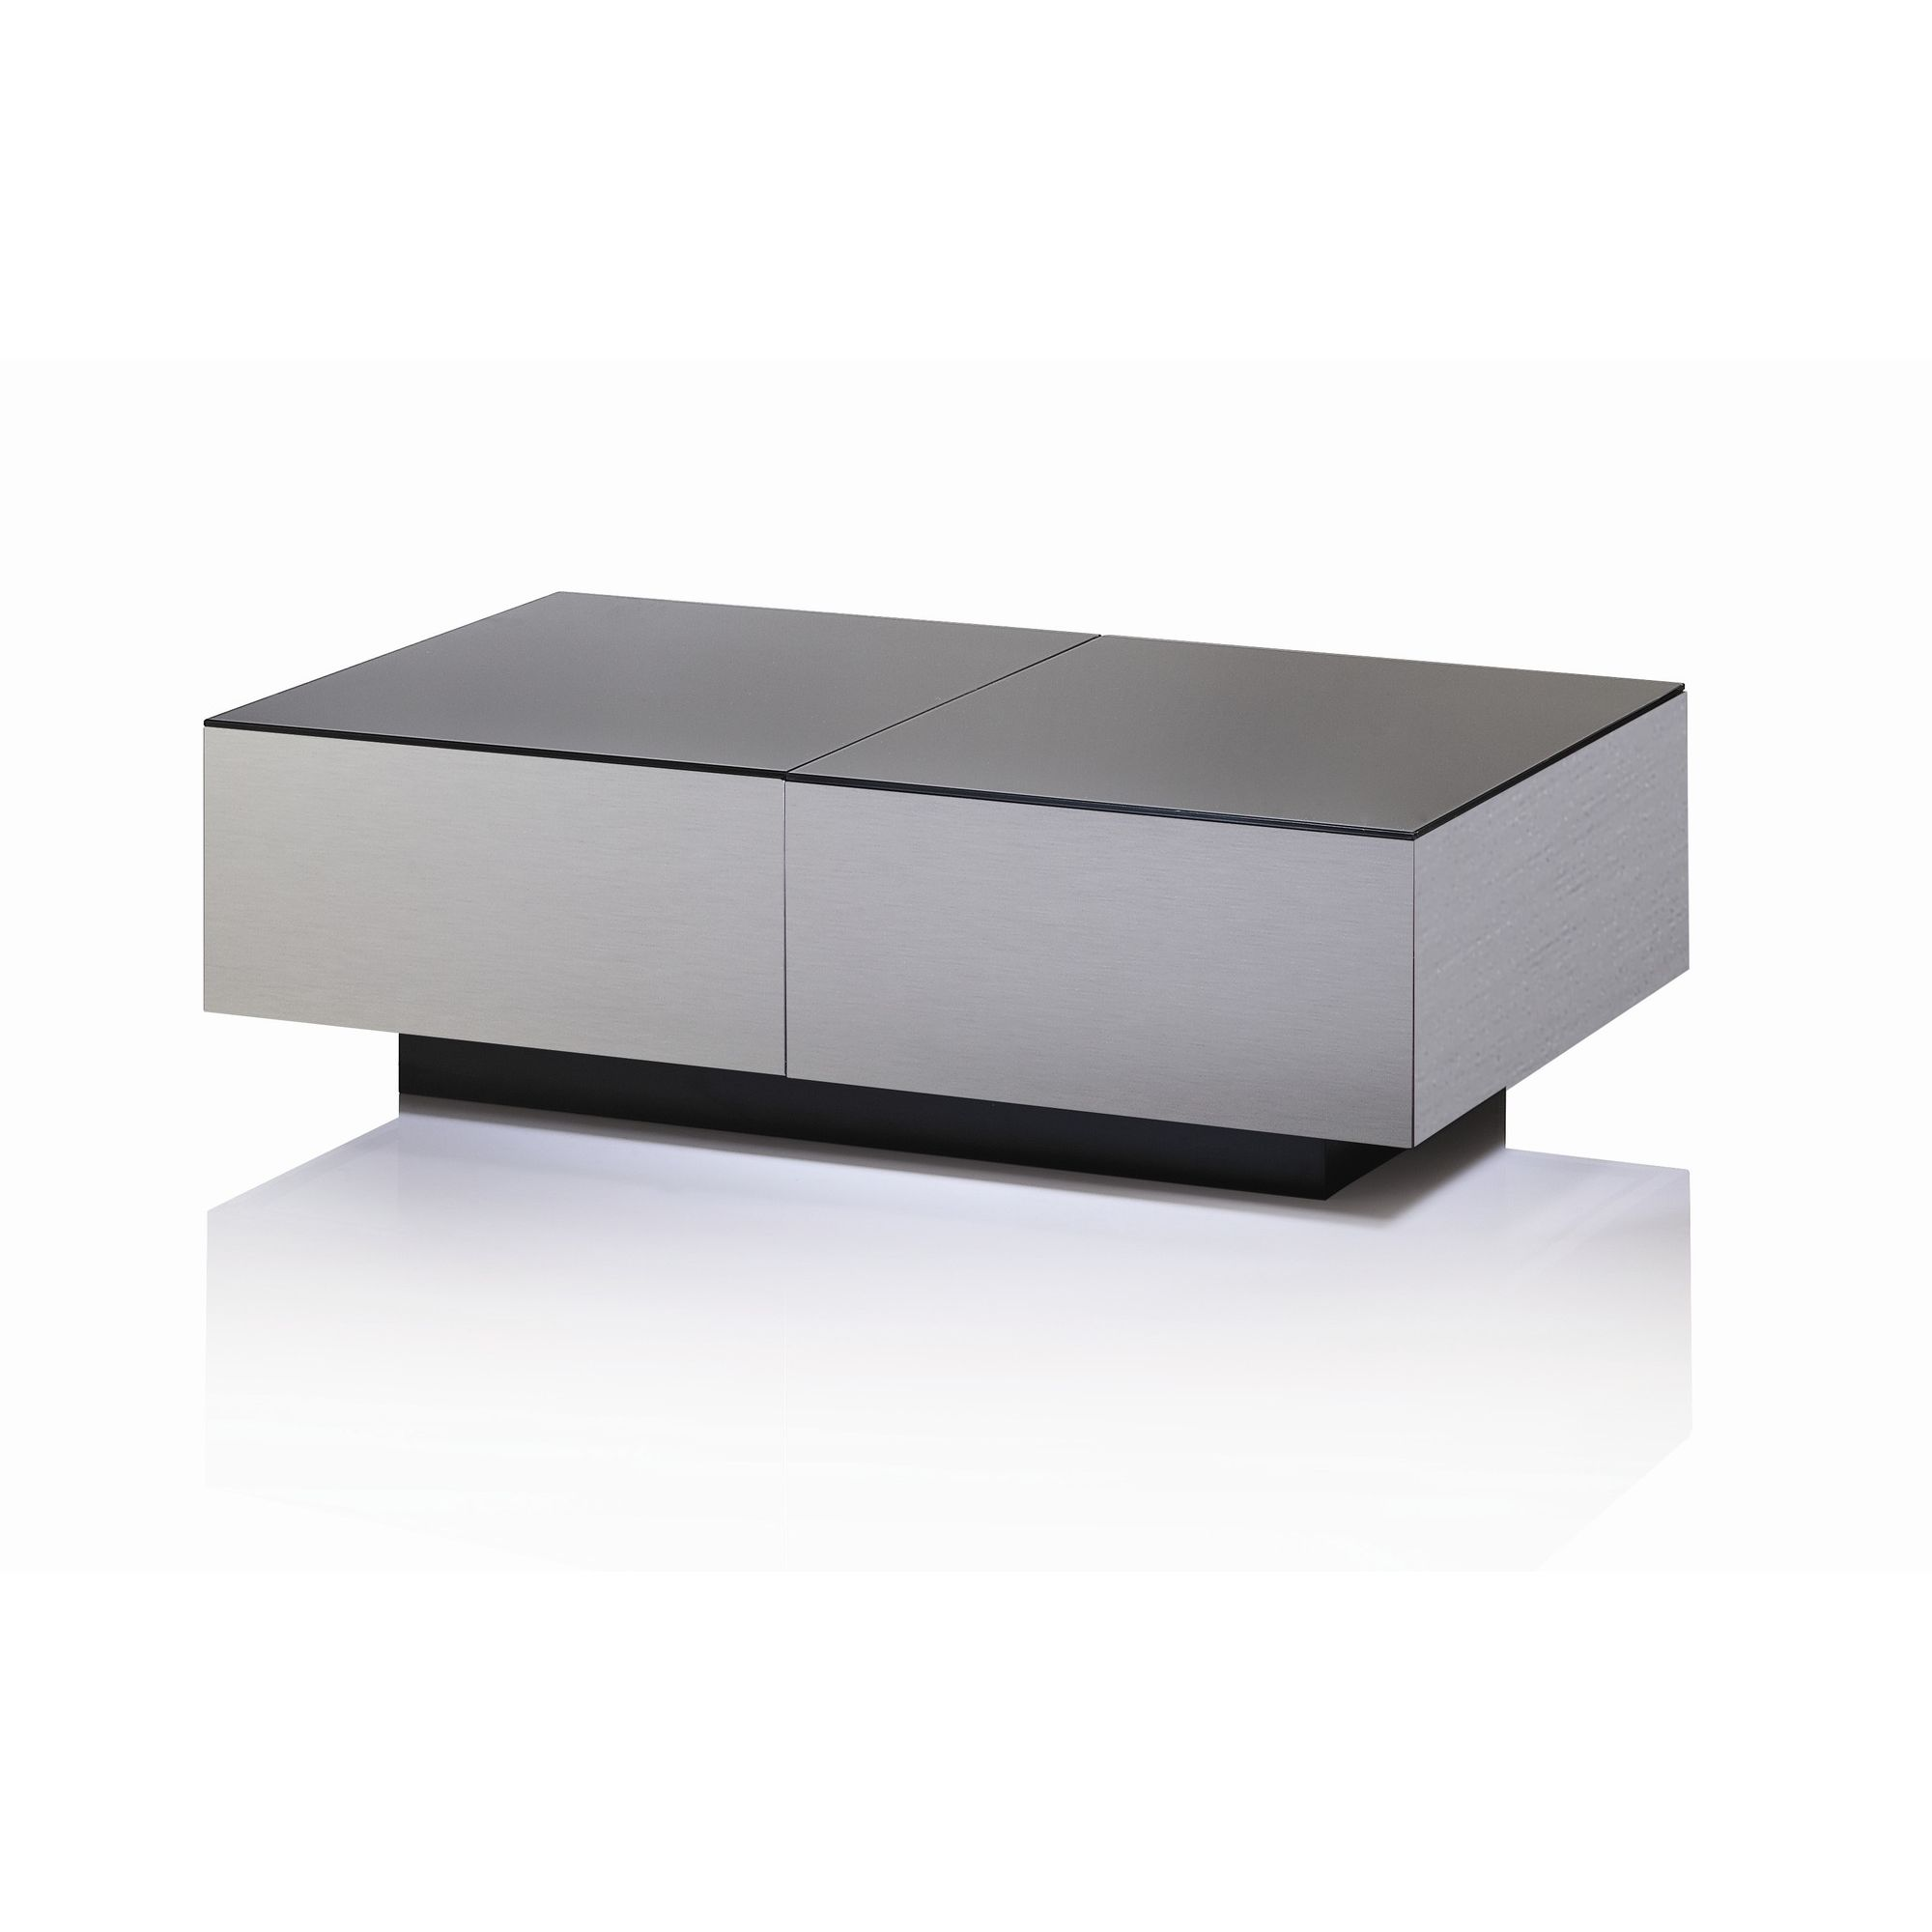 UK-CF G-CT Coffee Table - Inox at Tescos Direct